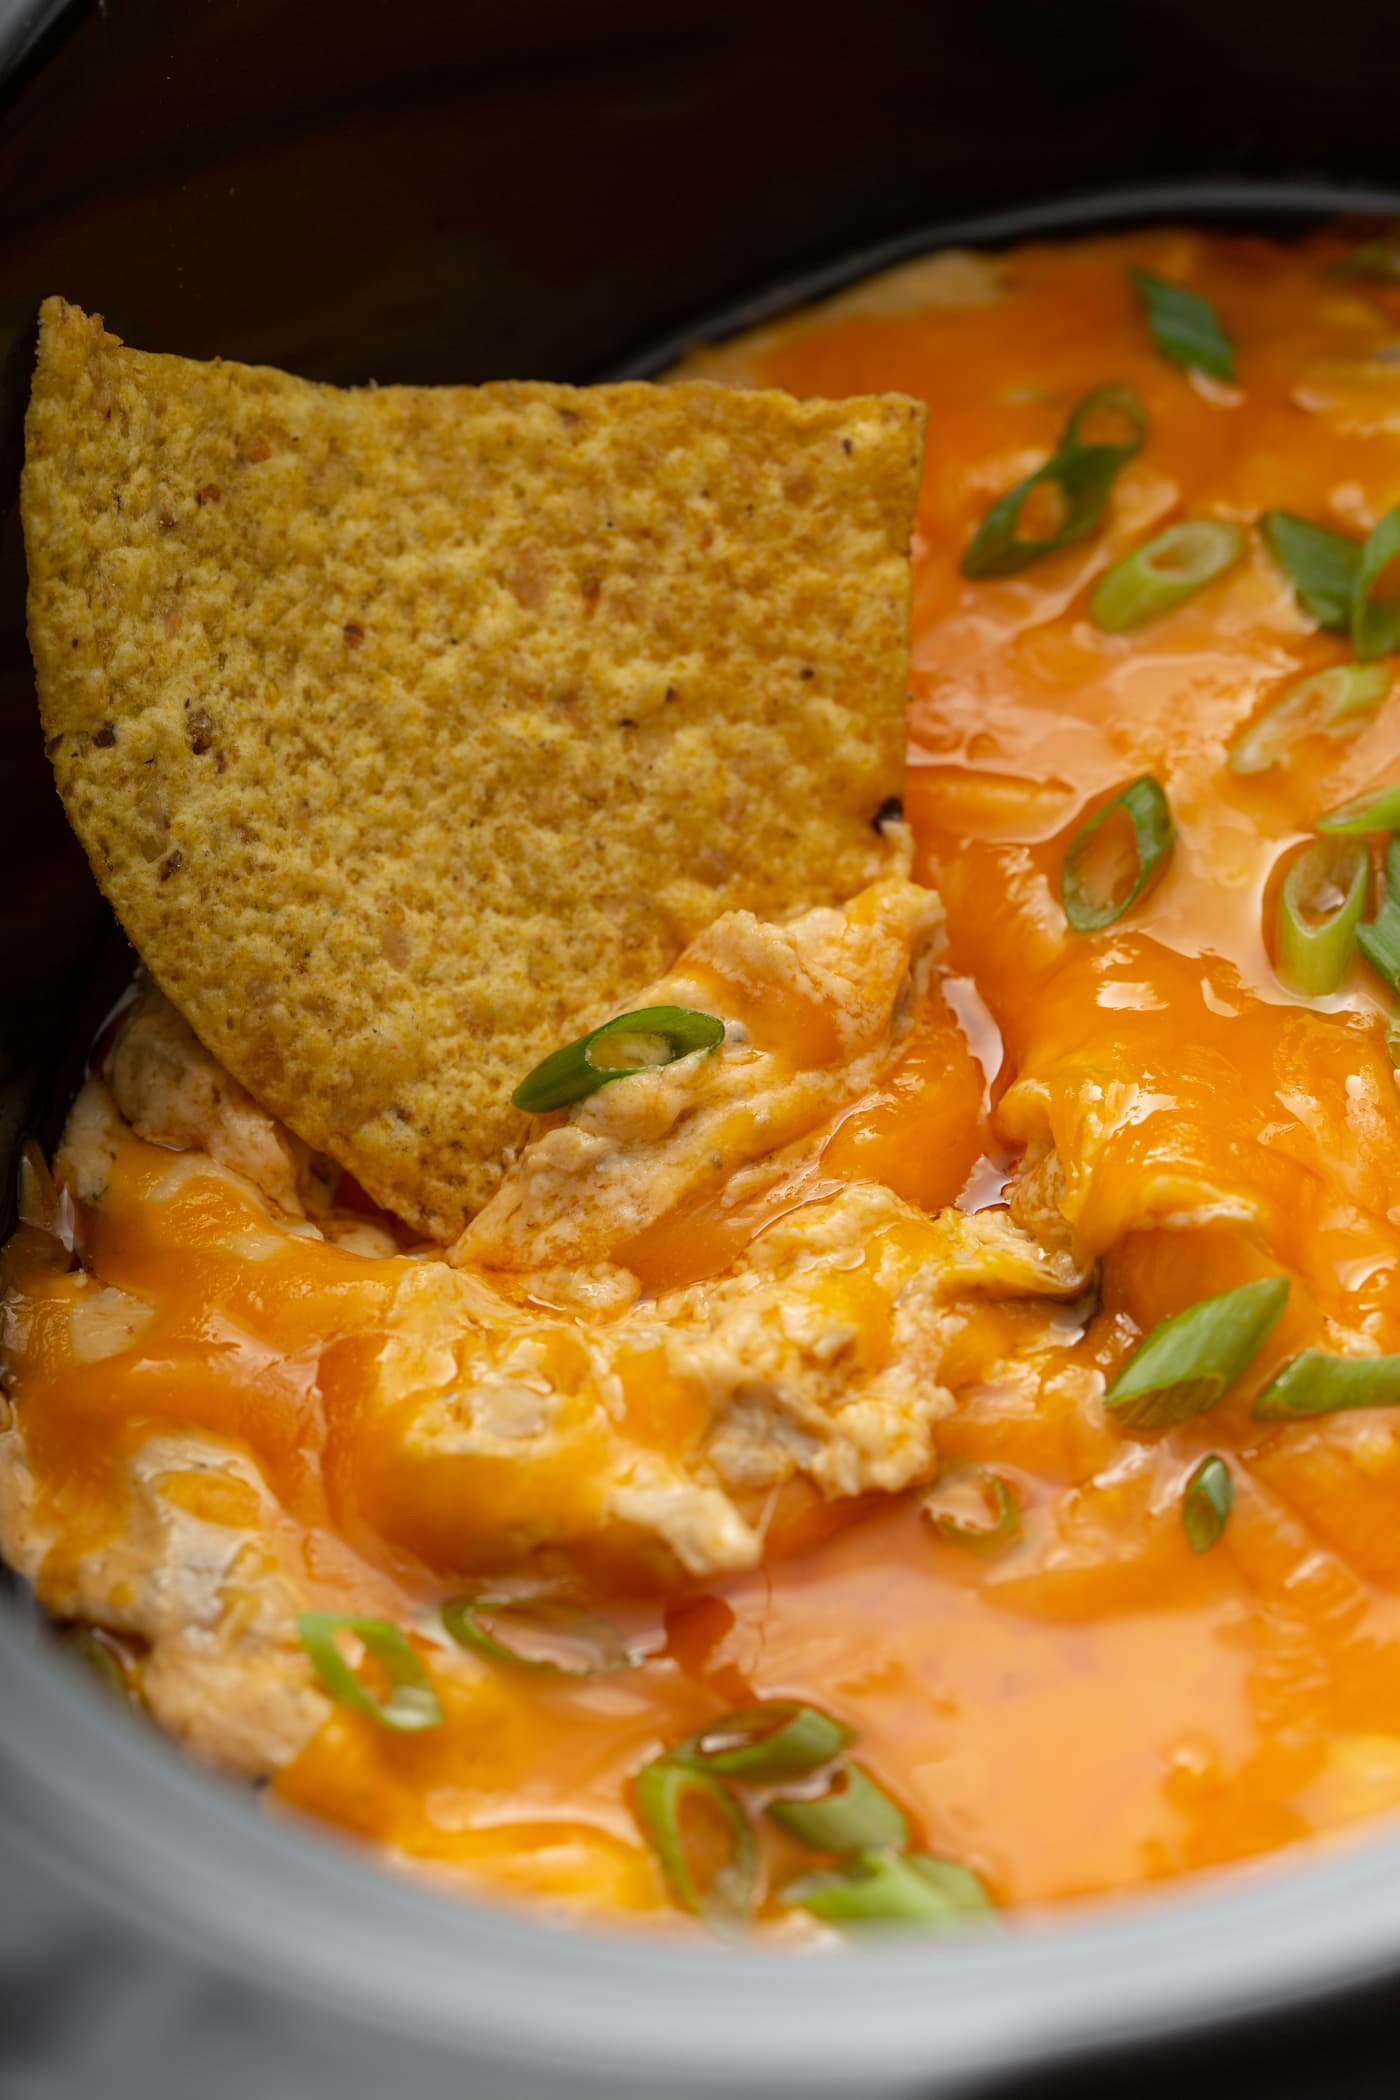 A tortilla chip with slow cooker buffalo chicken dip on it. There is shredded chicken, creamy buffalo sauce and chopped green onions in the dip.